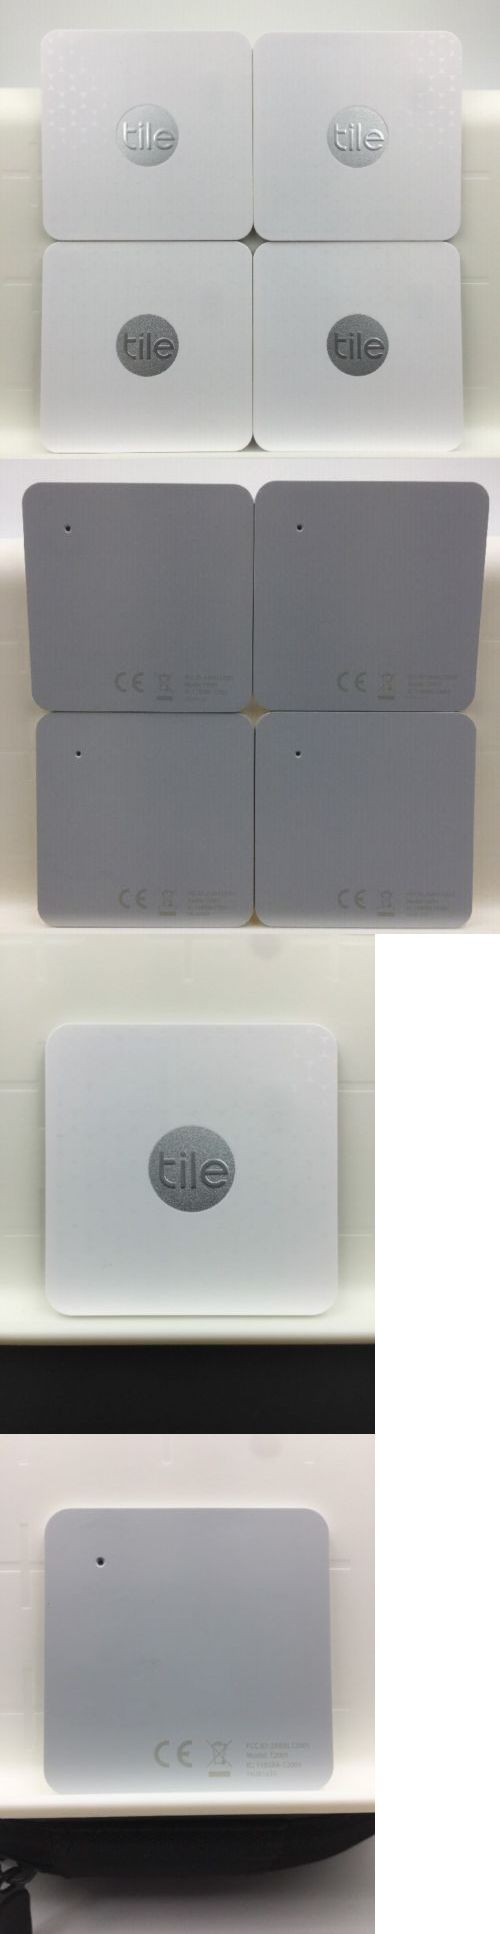 Tracking Devices: Tile Slim Bluetooth Tracker Phone Wallet Anything Finder (4-Pack) - Brand New -> BUY IT NOW ONLY: $49.99 on eBay!